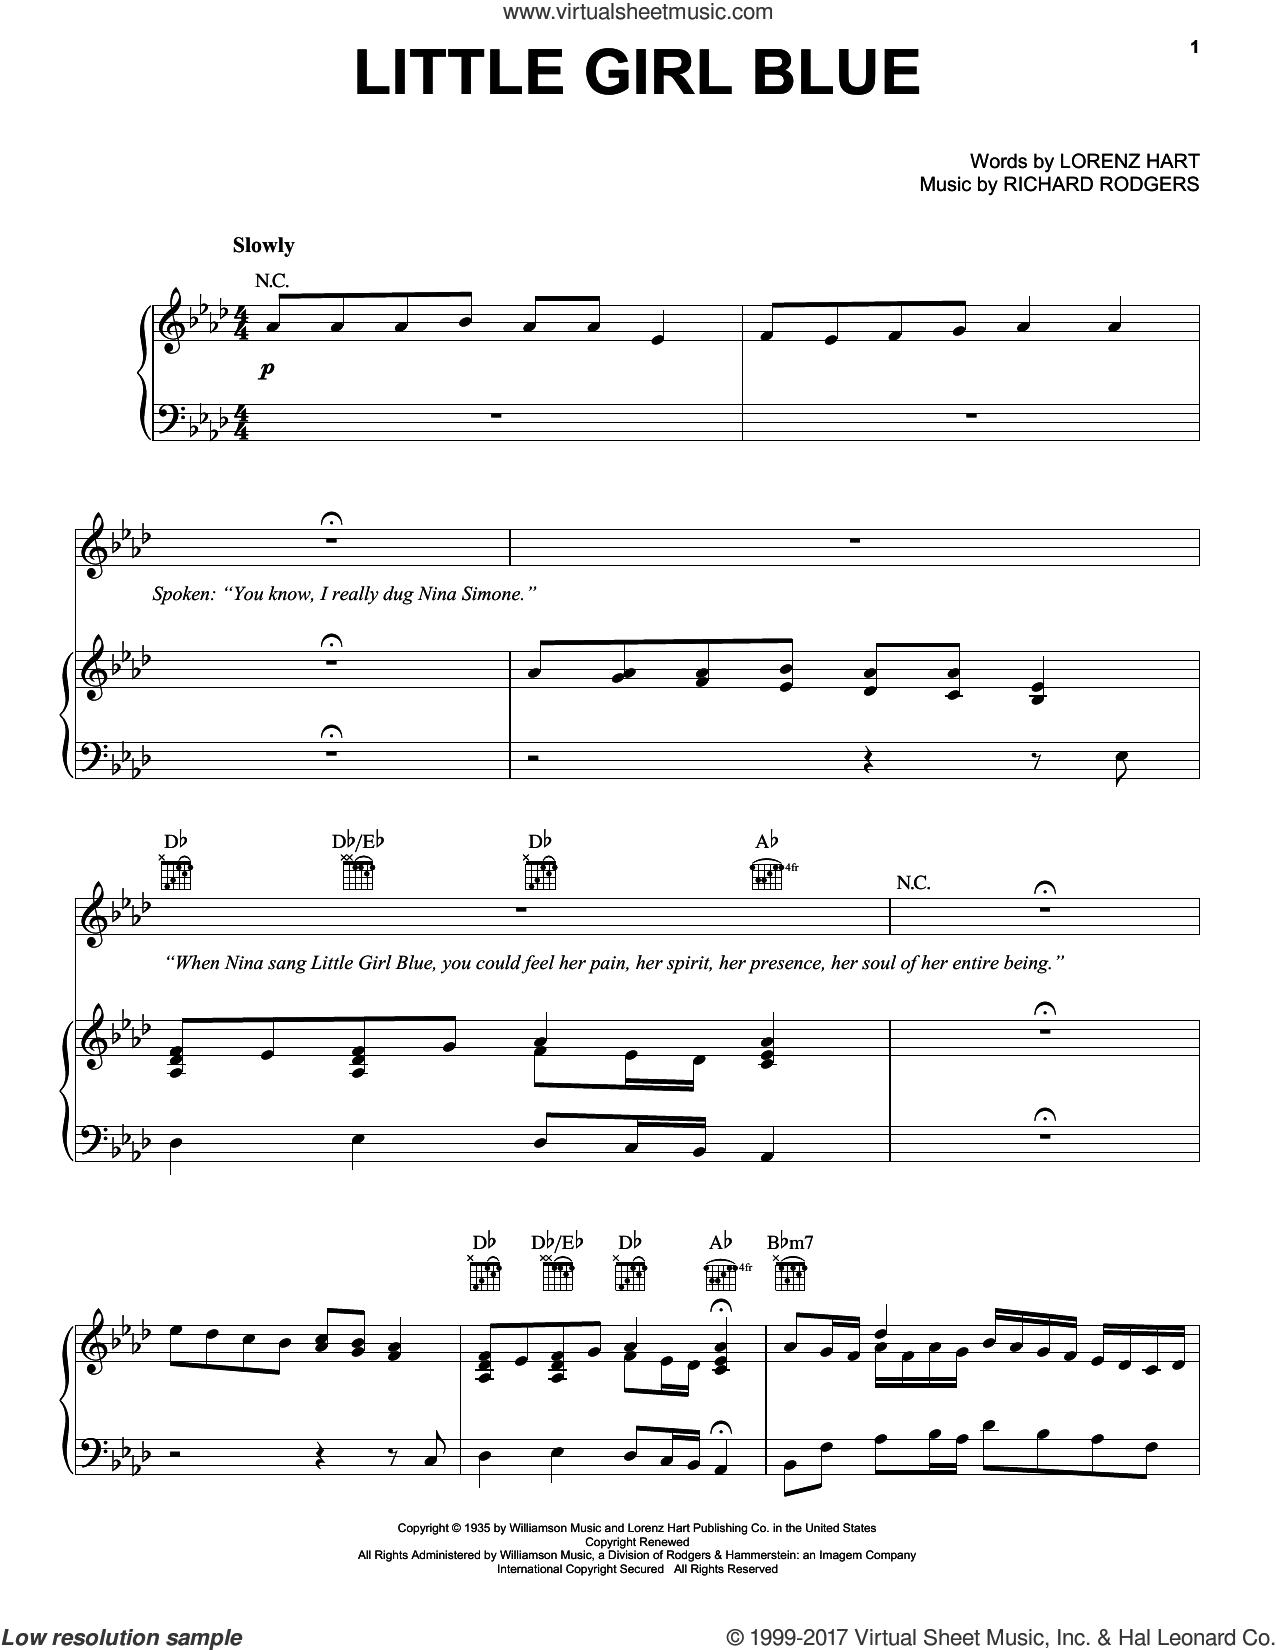 Little Girl Blue sheet music for voice, piano or guitar by Janis Joplin, Lorenz Hart and Richard Rodgers, intermediate skill level